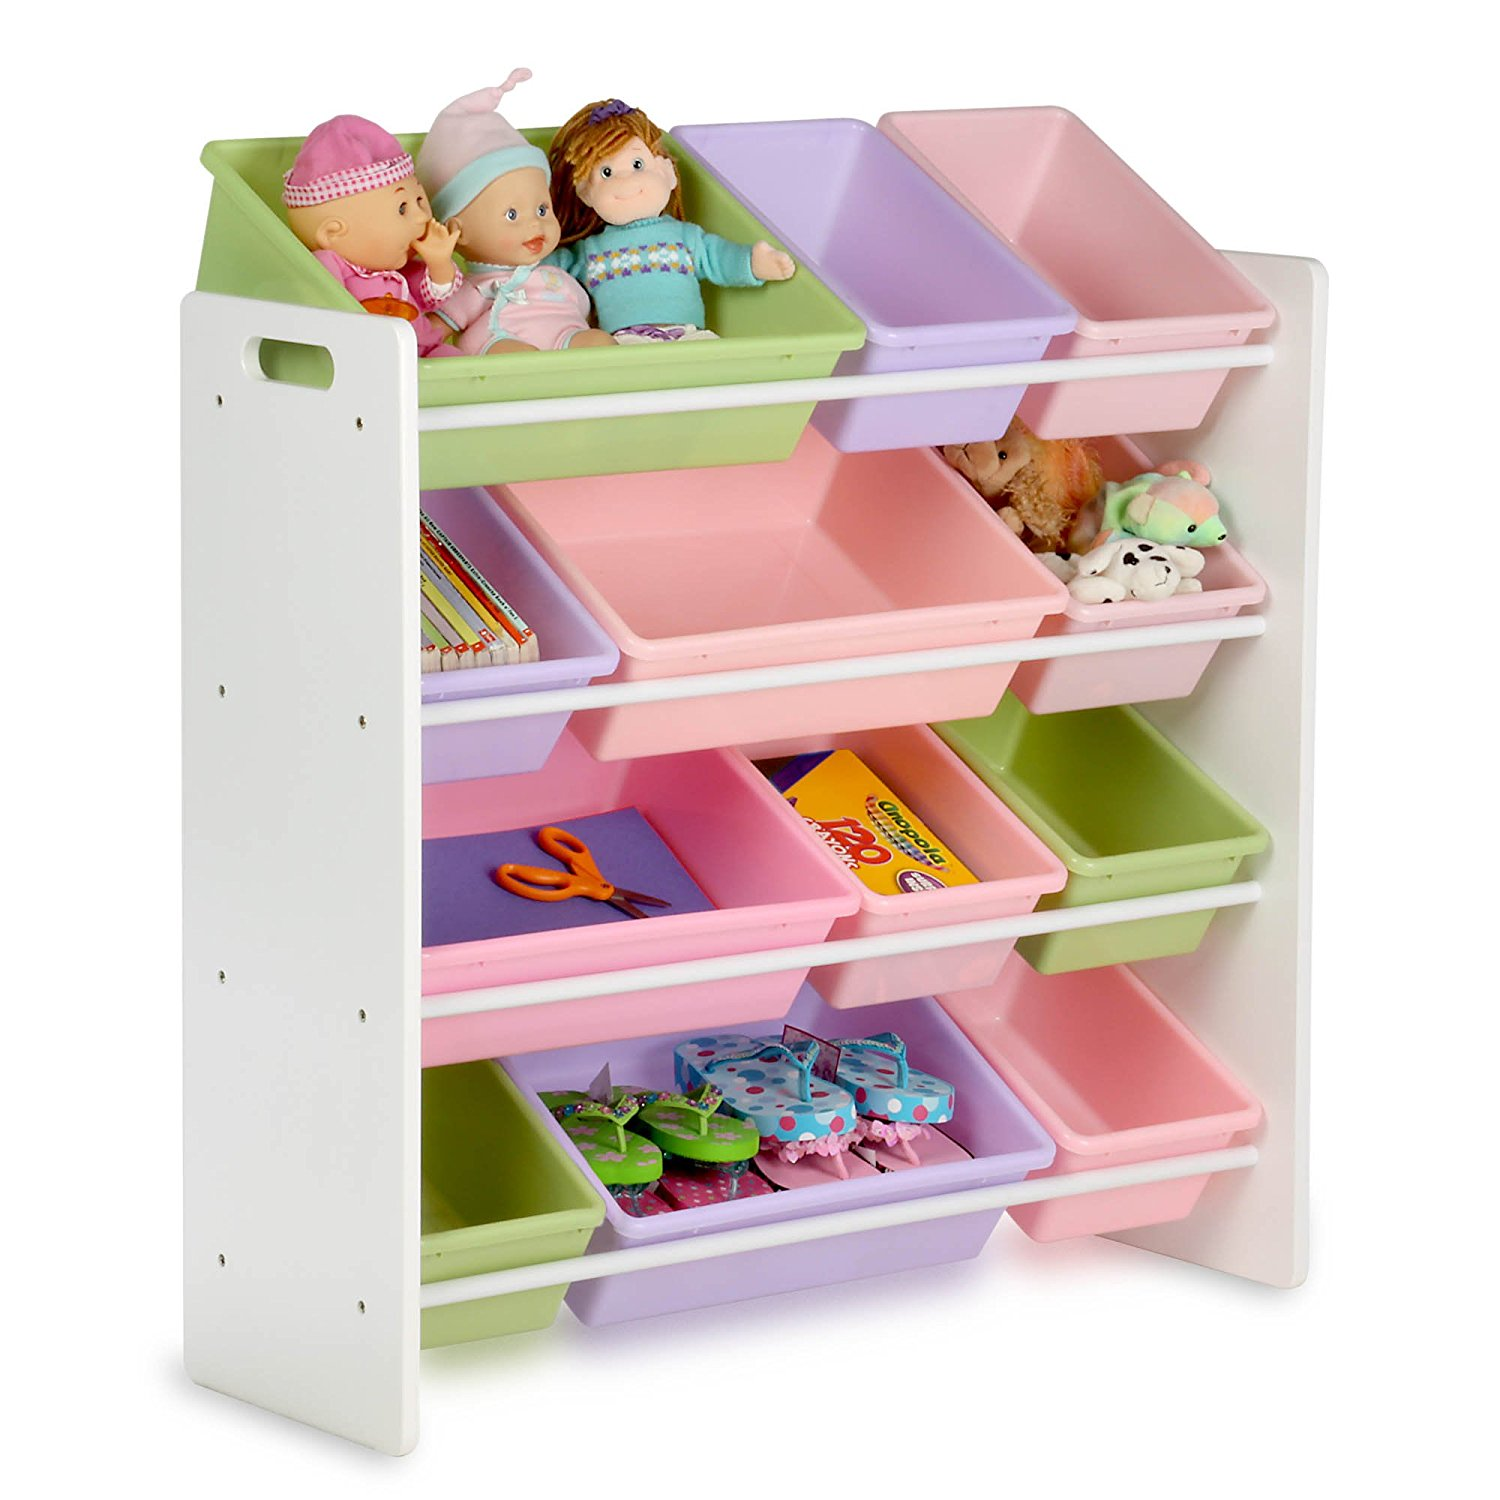 kids storage amazon.com: honey-can-do srt-01603 kids toy organizer and storage bins,  white/pastel: kitchen u0026 CWPKJBV